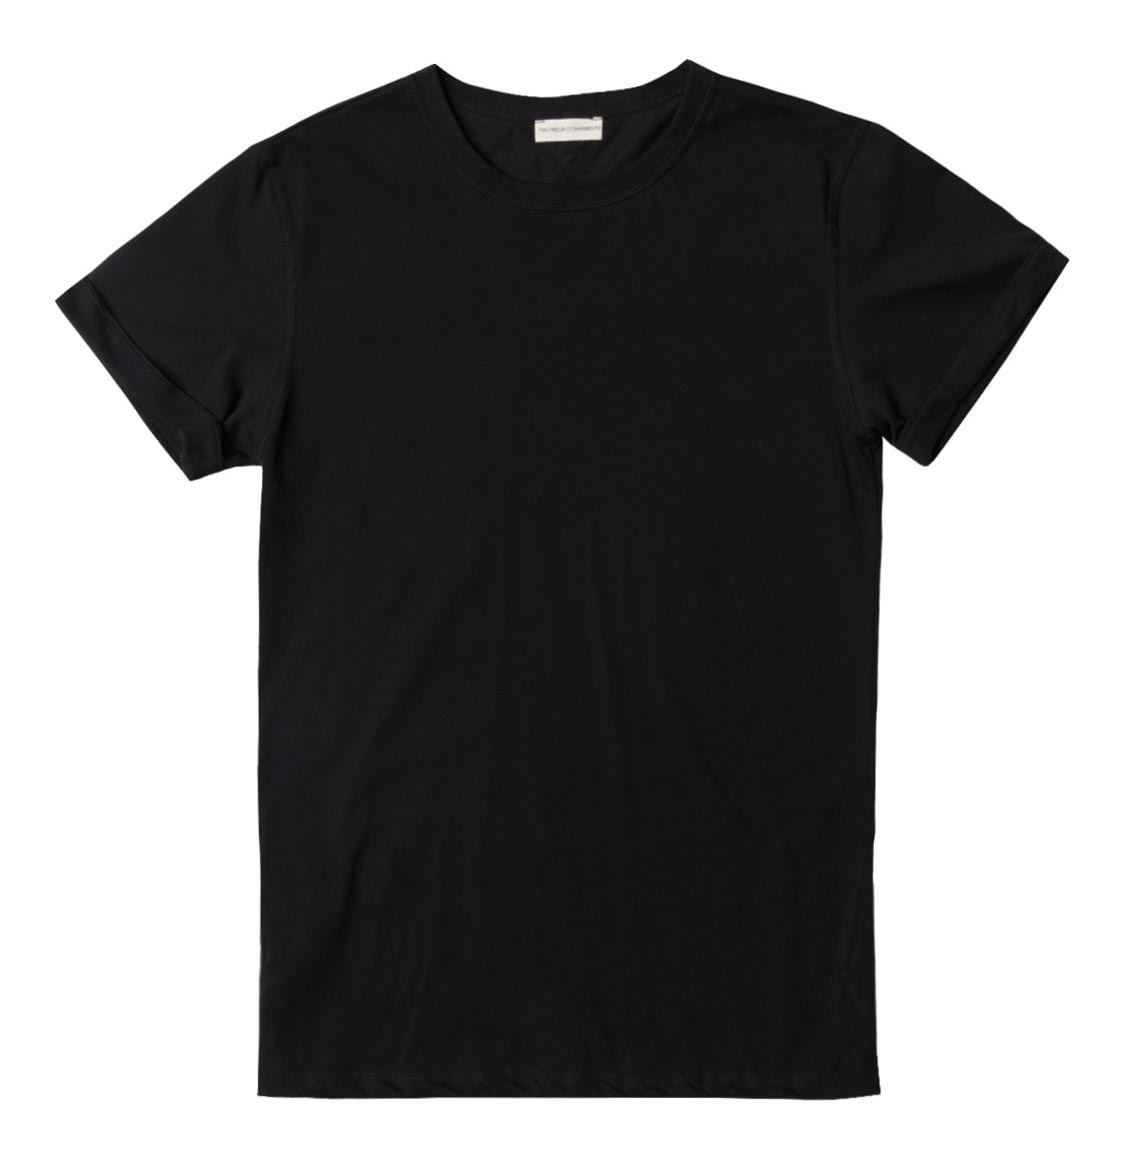 The Project Garments Cotton Jersey Trimmed Crew Neck T-Shirt Black